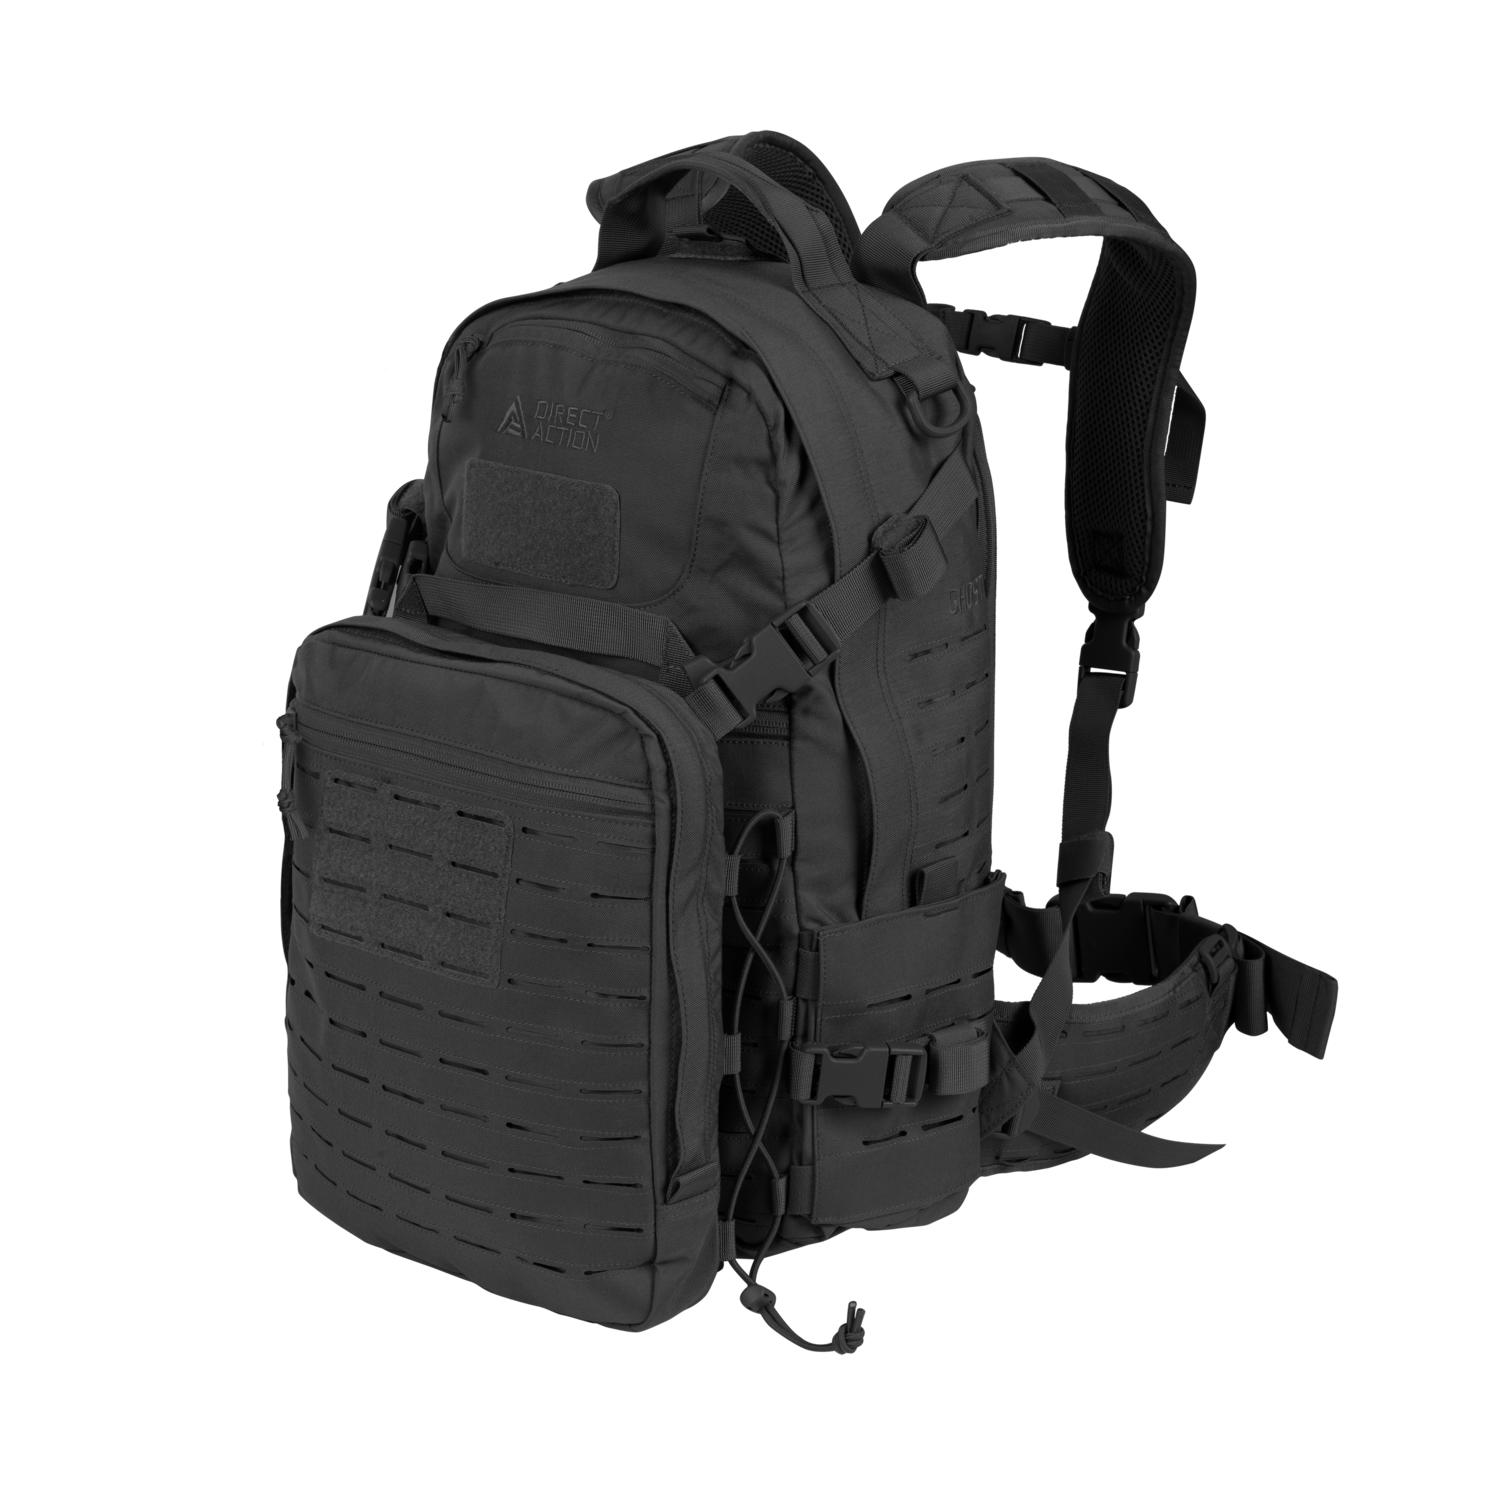 f2161d3ce513 Ghost Tactical Backpack - Direct Action® Advanced Tactical Gear